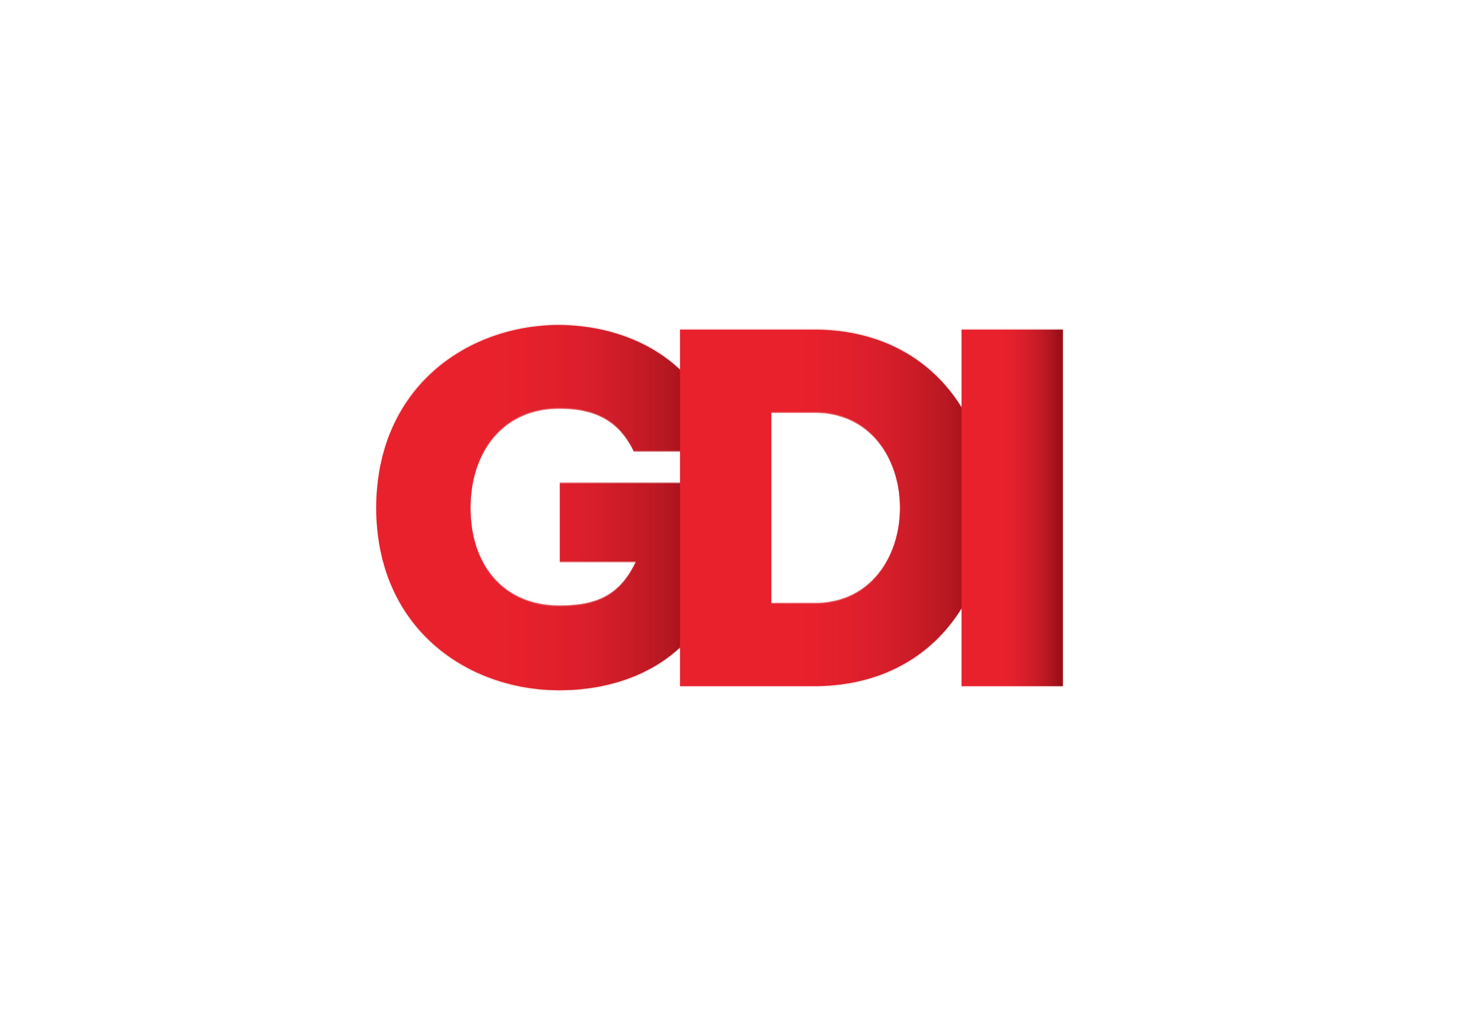 10 Top Stories Not To Miss On GDI This Week